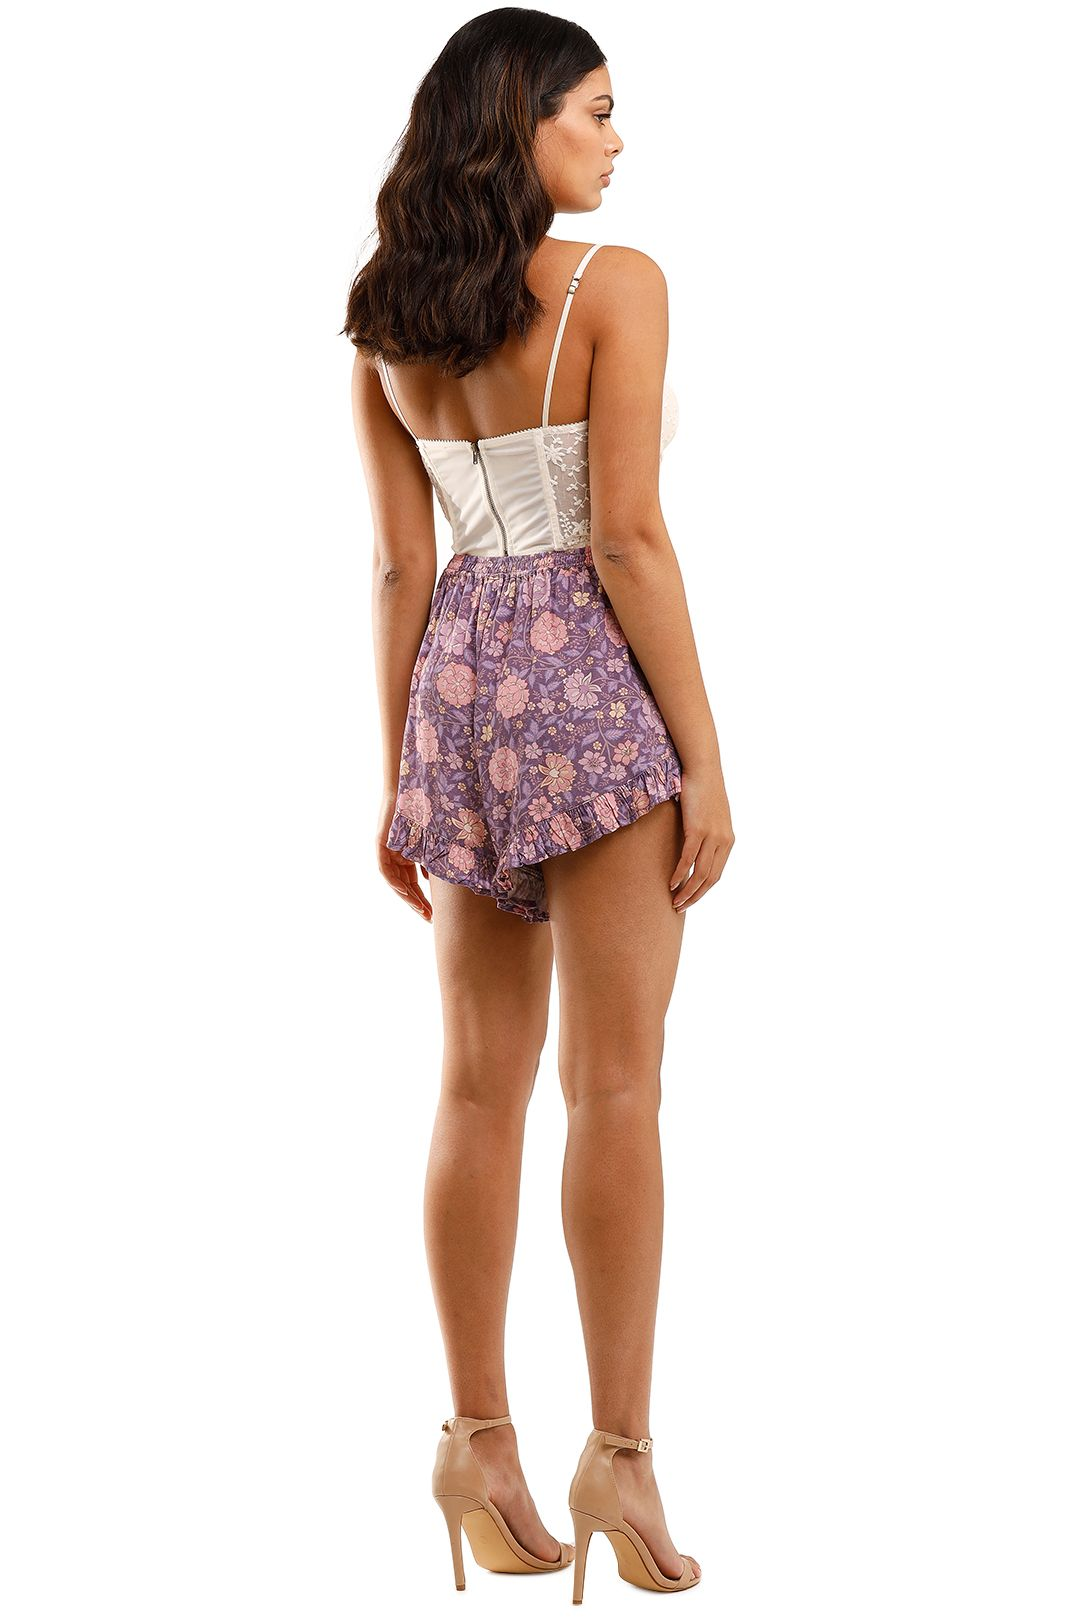 Spell Love Story Shorts Royal Lilac Floral